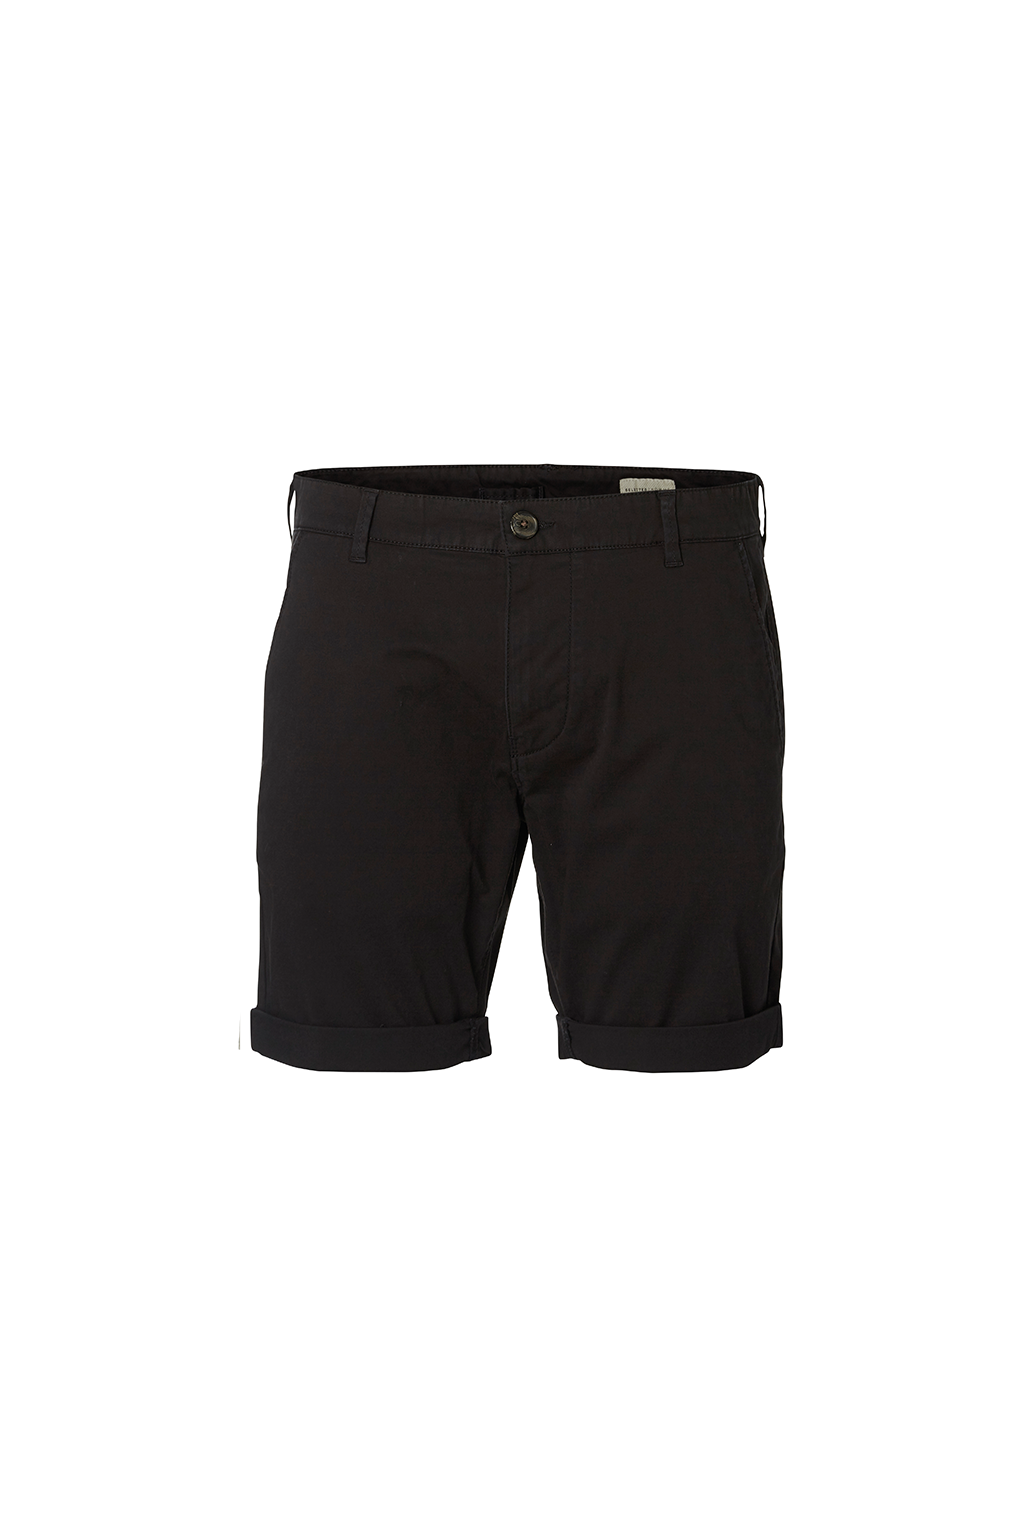 Paris Shorts - Straight - Black